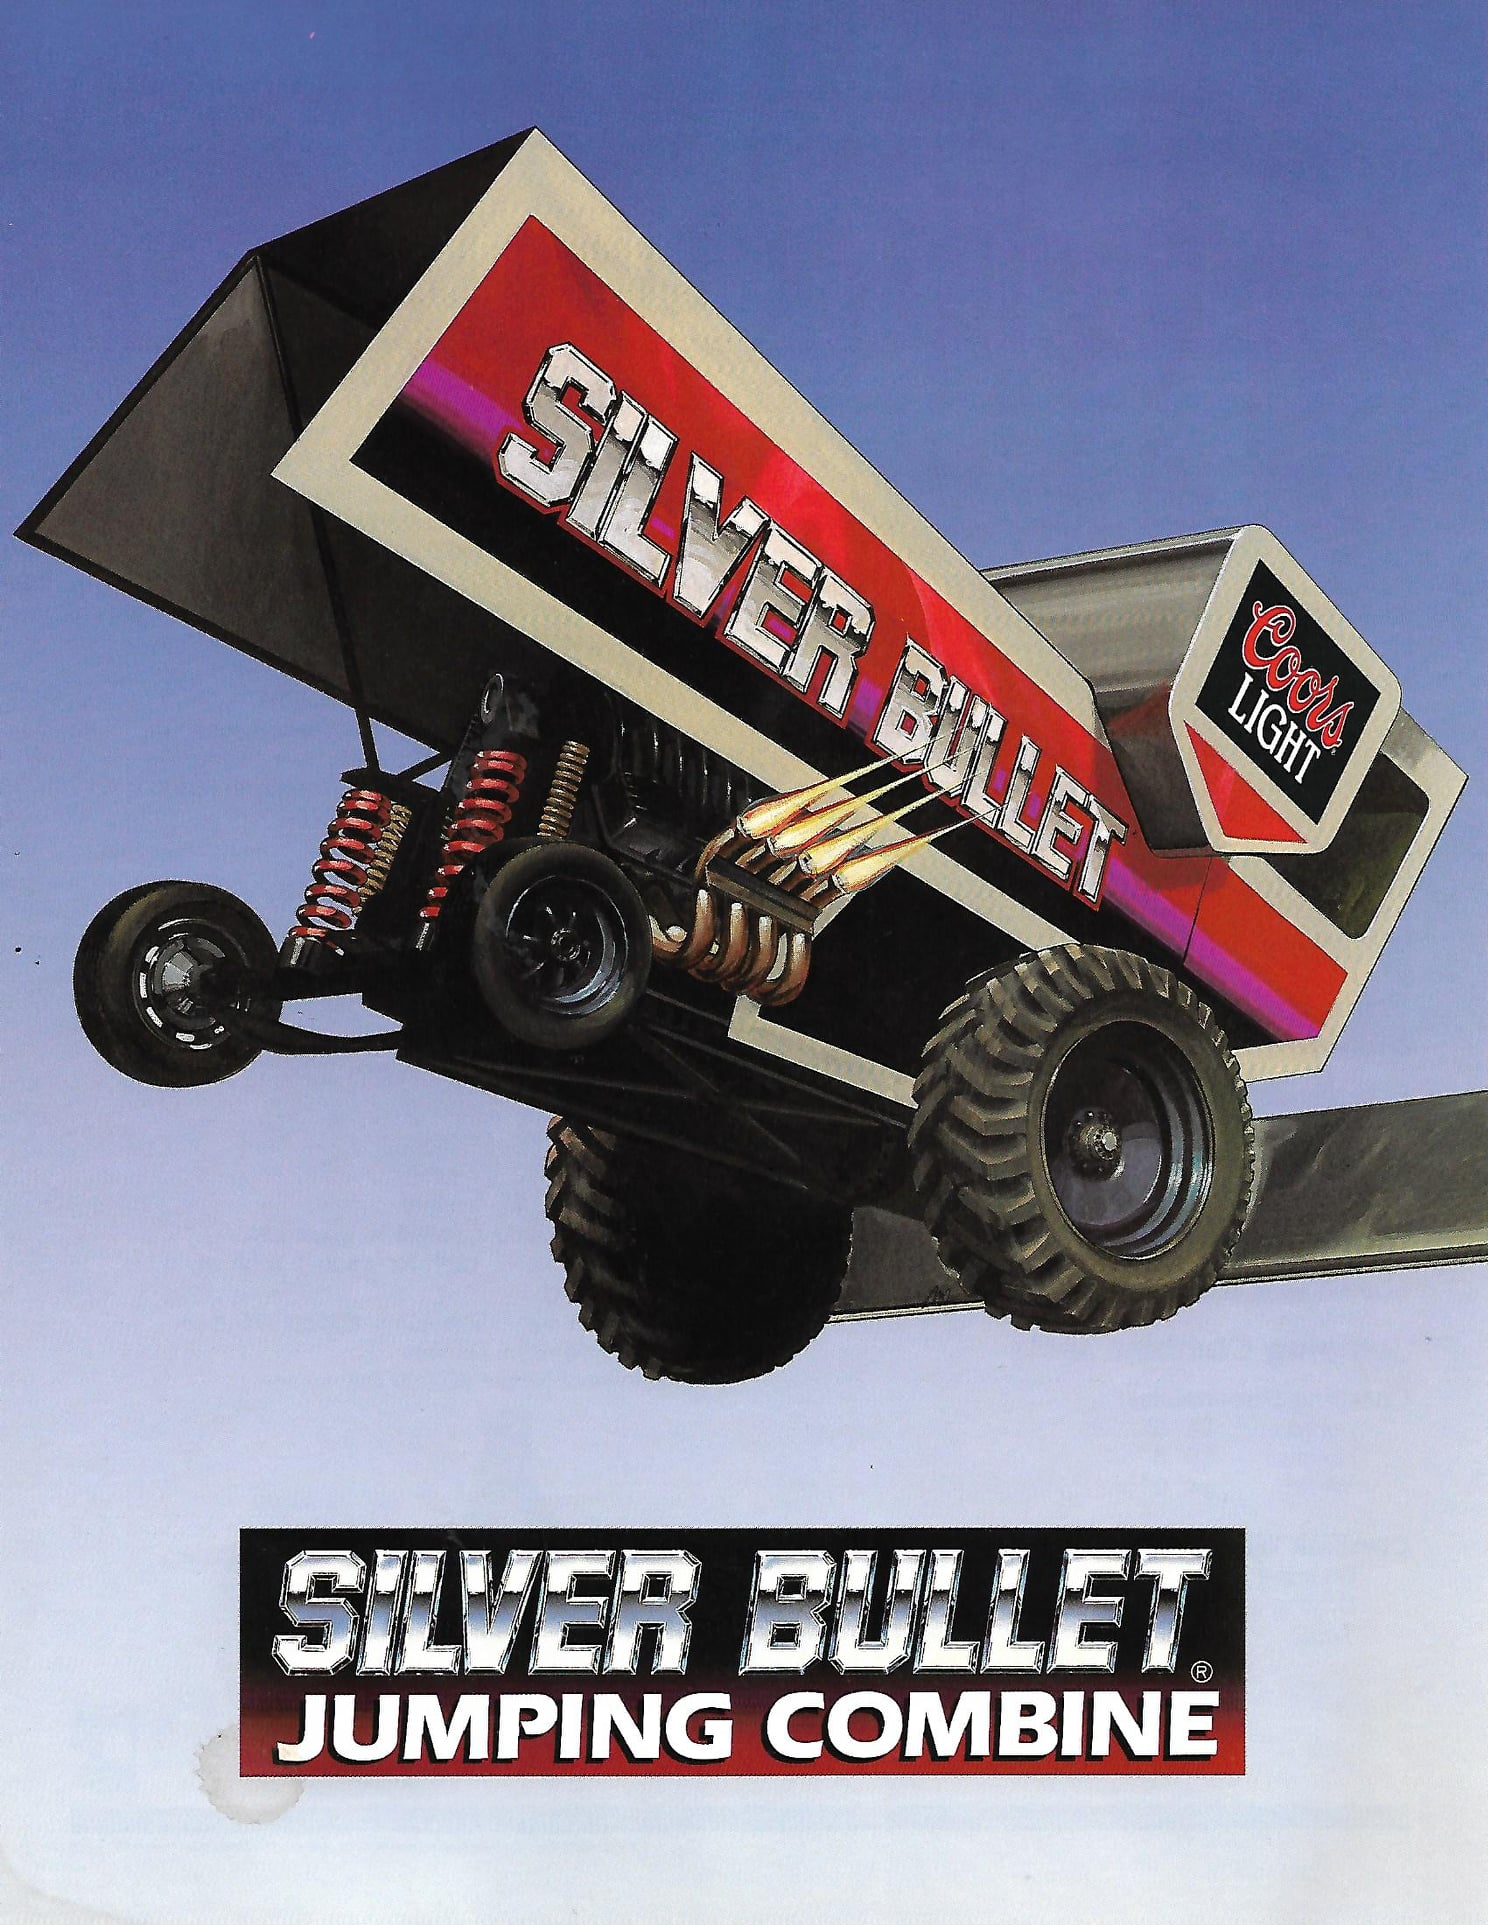 Silver Bullet Jumping Combine